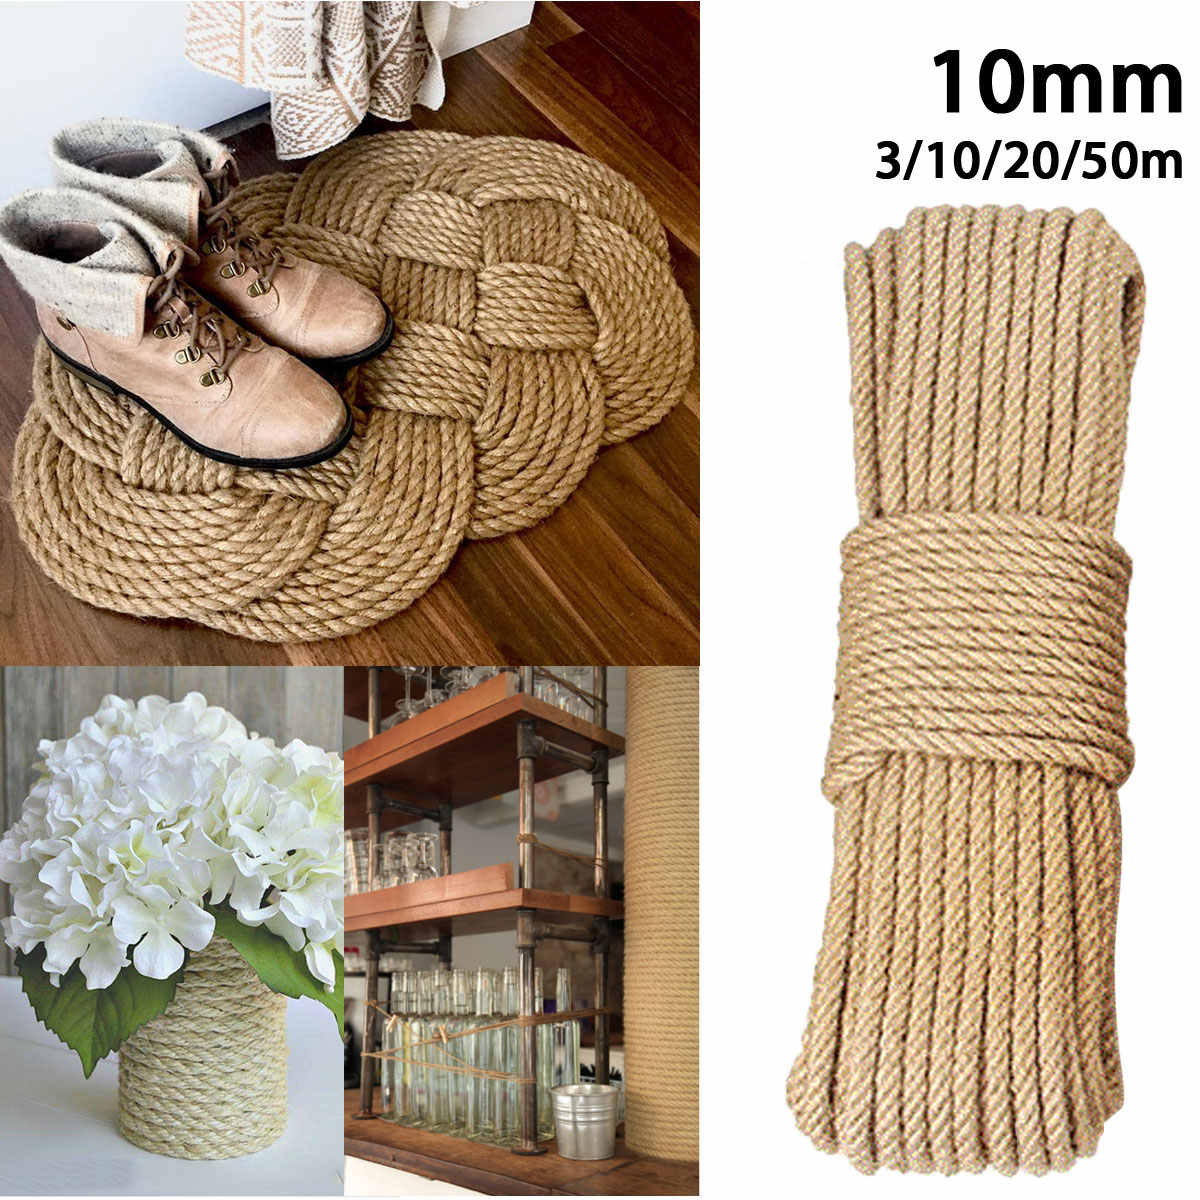 KIWARM 10mm 3-50m Jute Ropes Twine Natural Hemp Cord DIY Nordic Home Decor Cat Pet Scratching